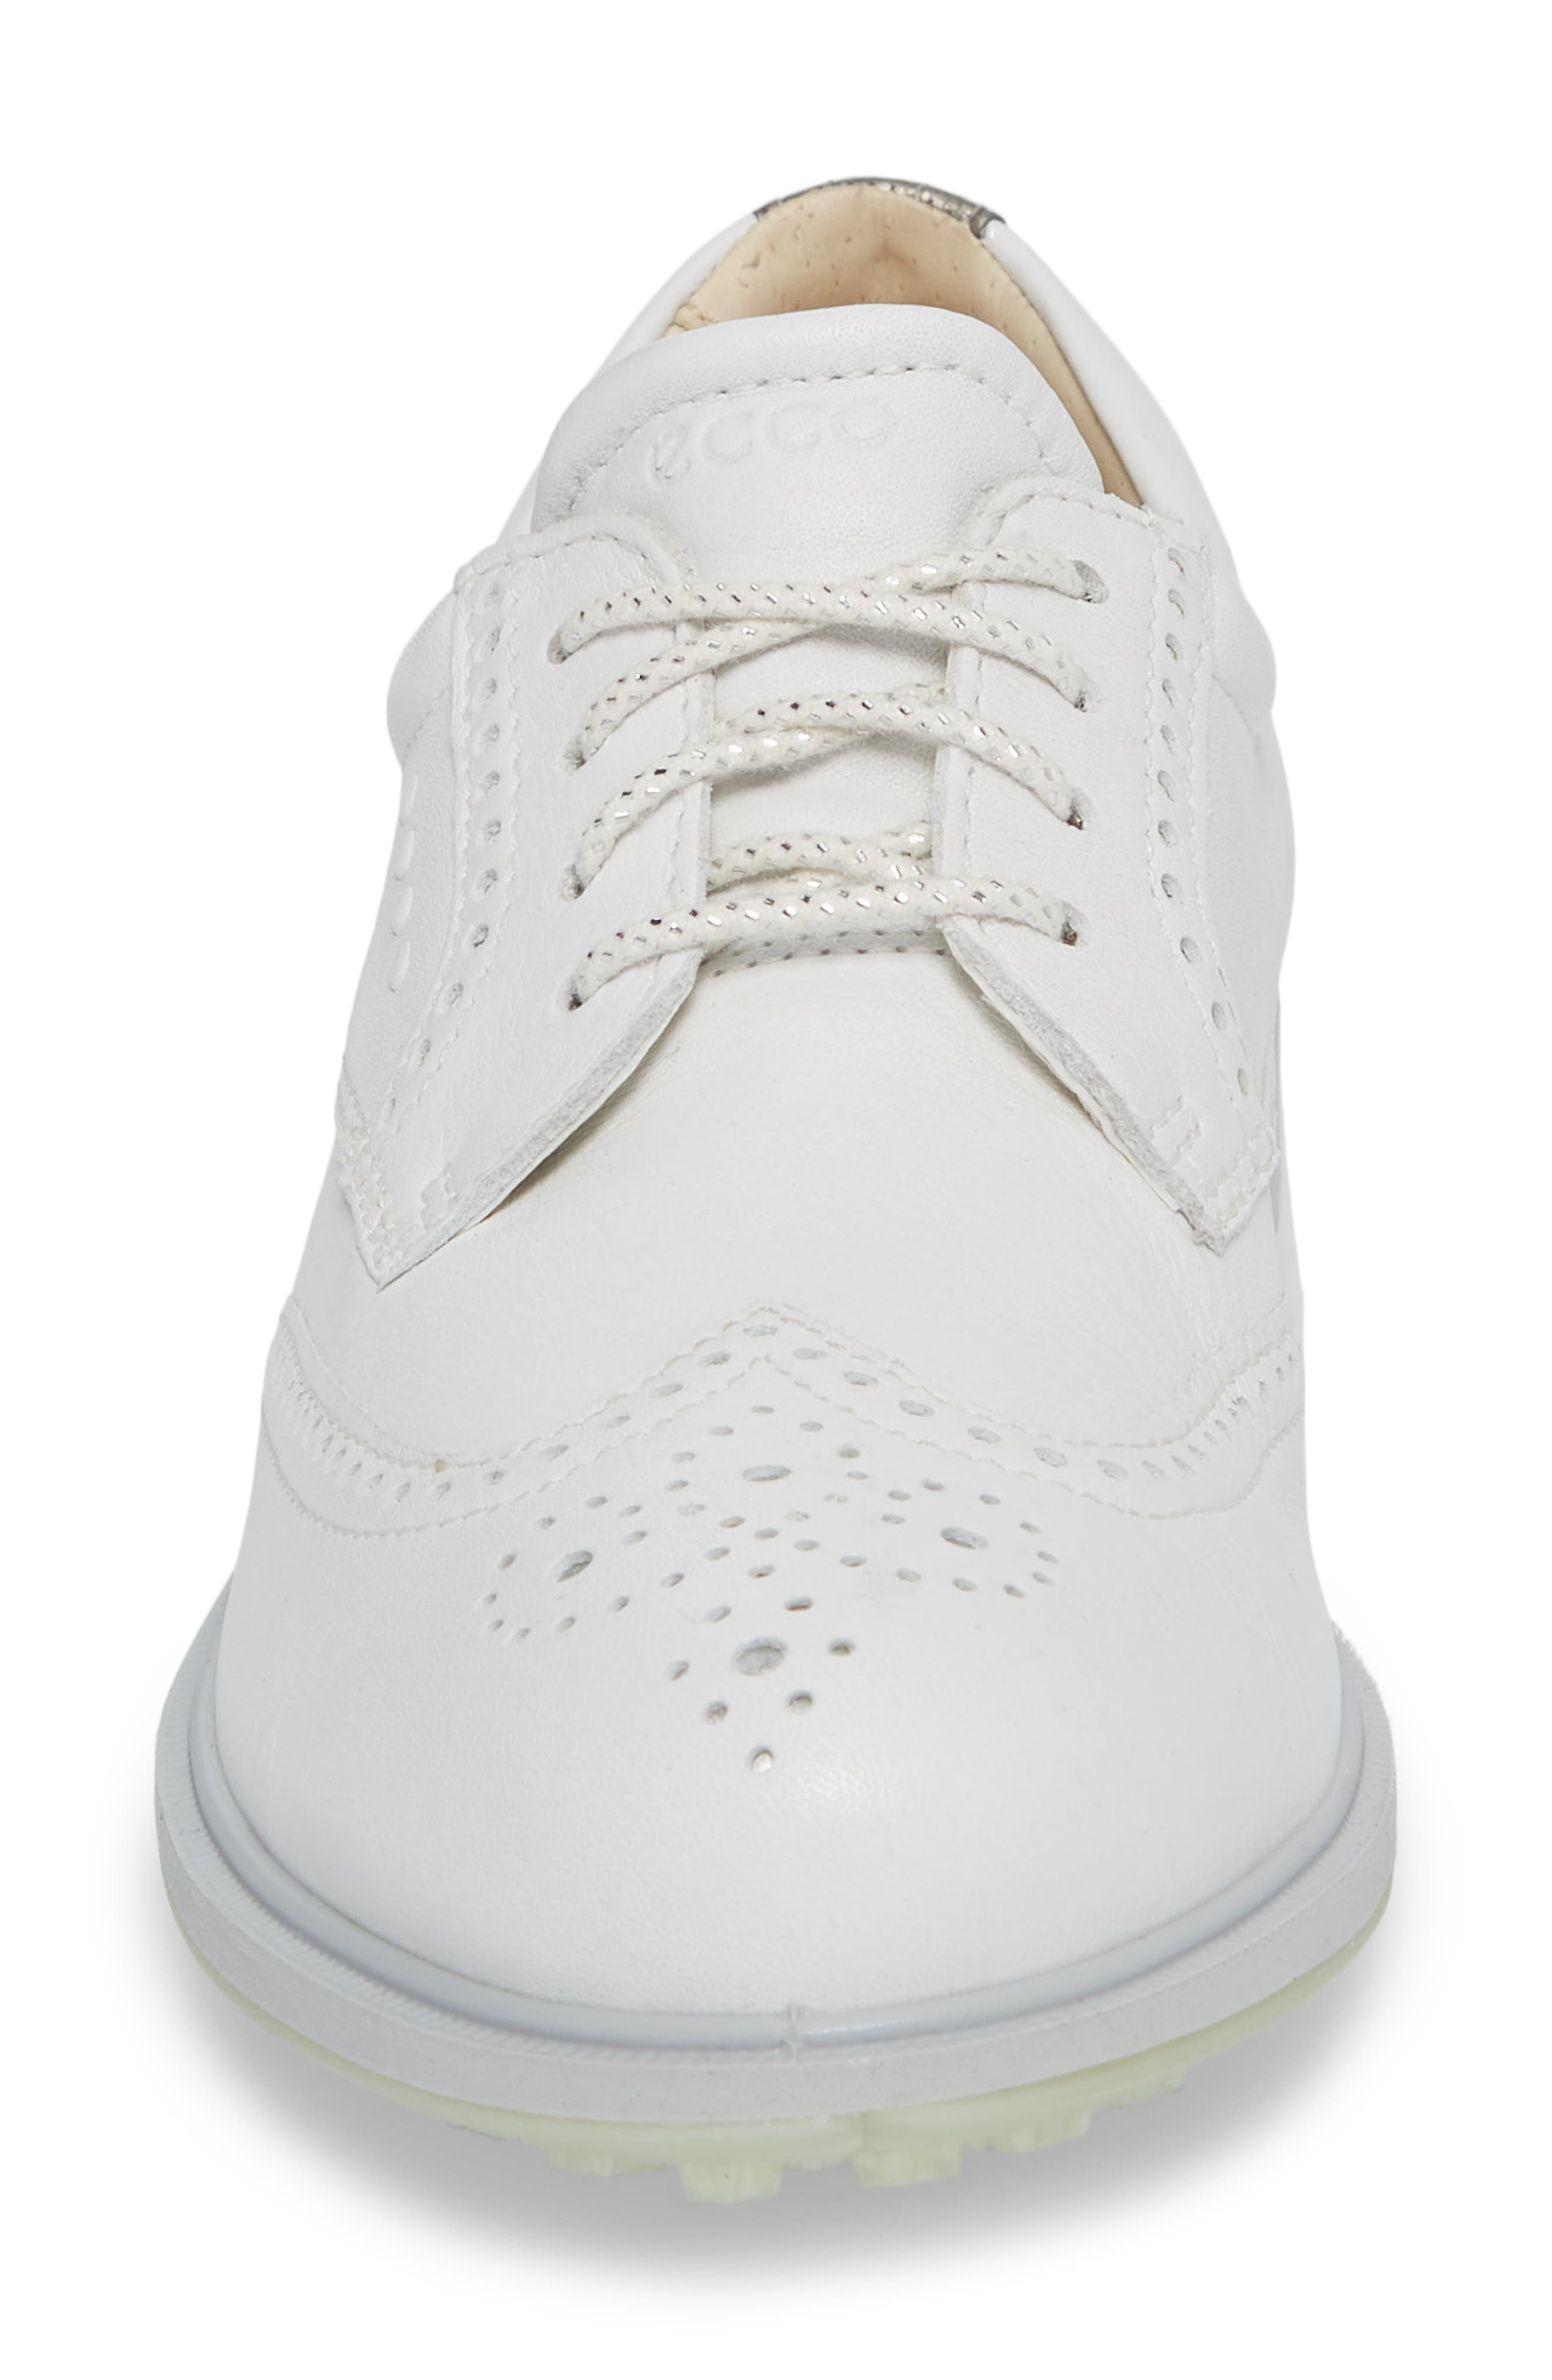 'Tour' Hybrid Wingtip Golf Shoe,                             Alternate thumbnail 4, color,                             WHITE LEATHER/ GREY